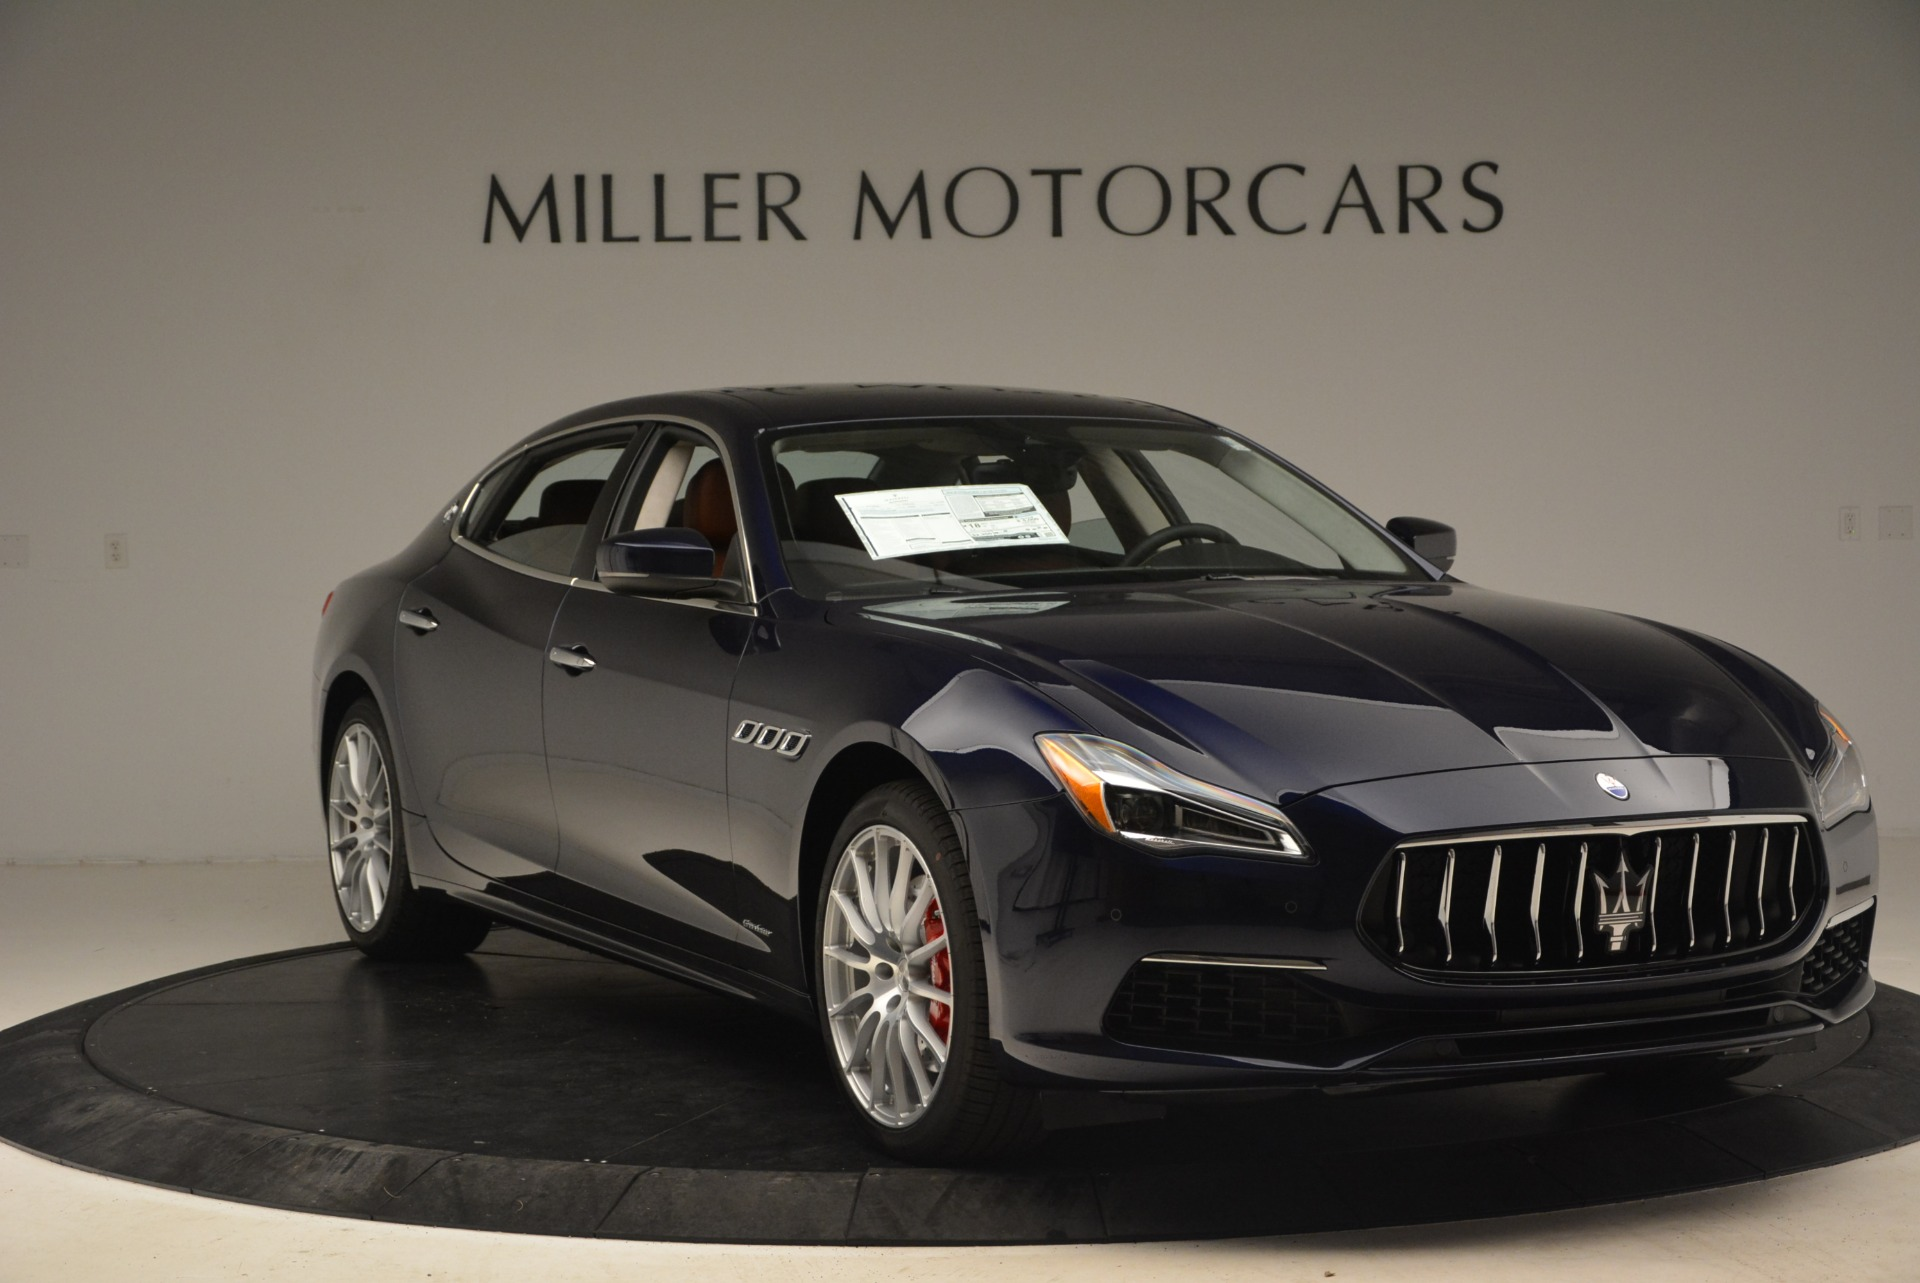 New 2019 Maserati Quattroporte S Q4 GranLusso For Sale In Greenwich, CT. Alfa Romeo of Greenwich, W631 2767_p11